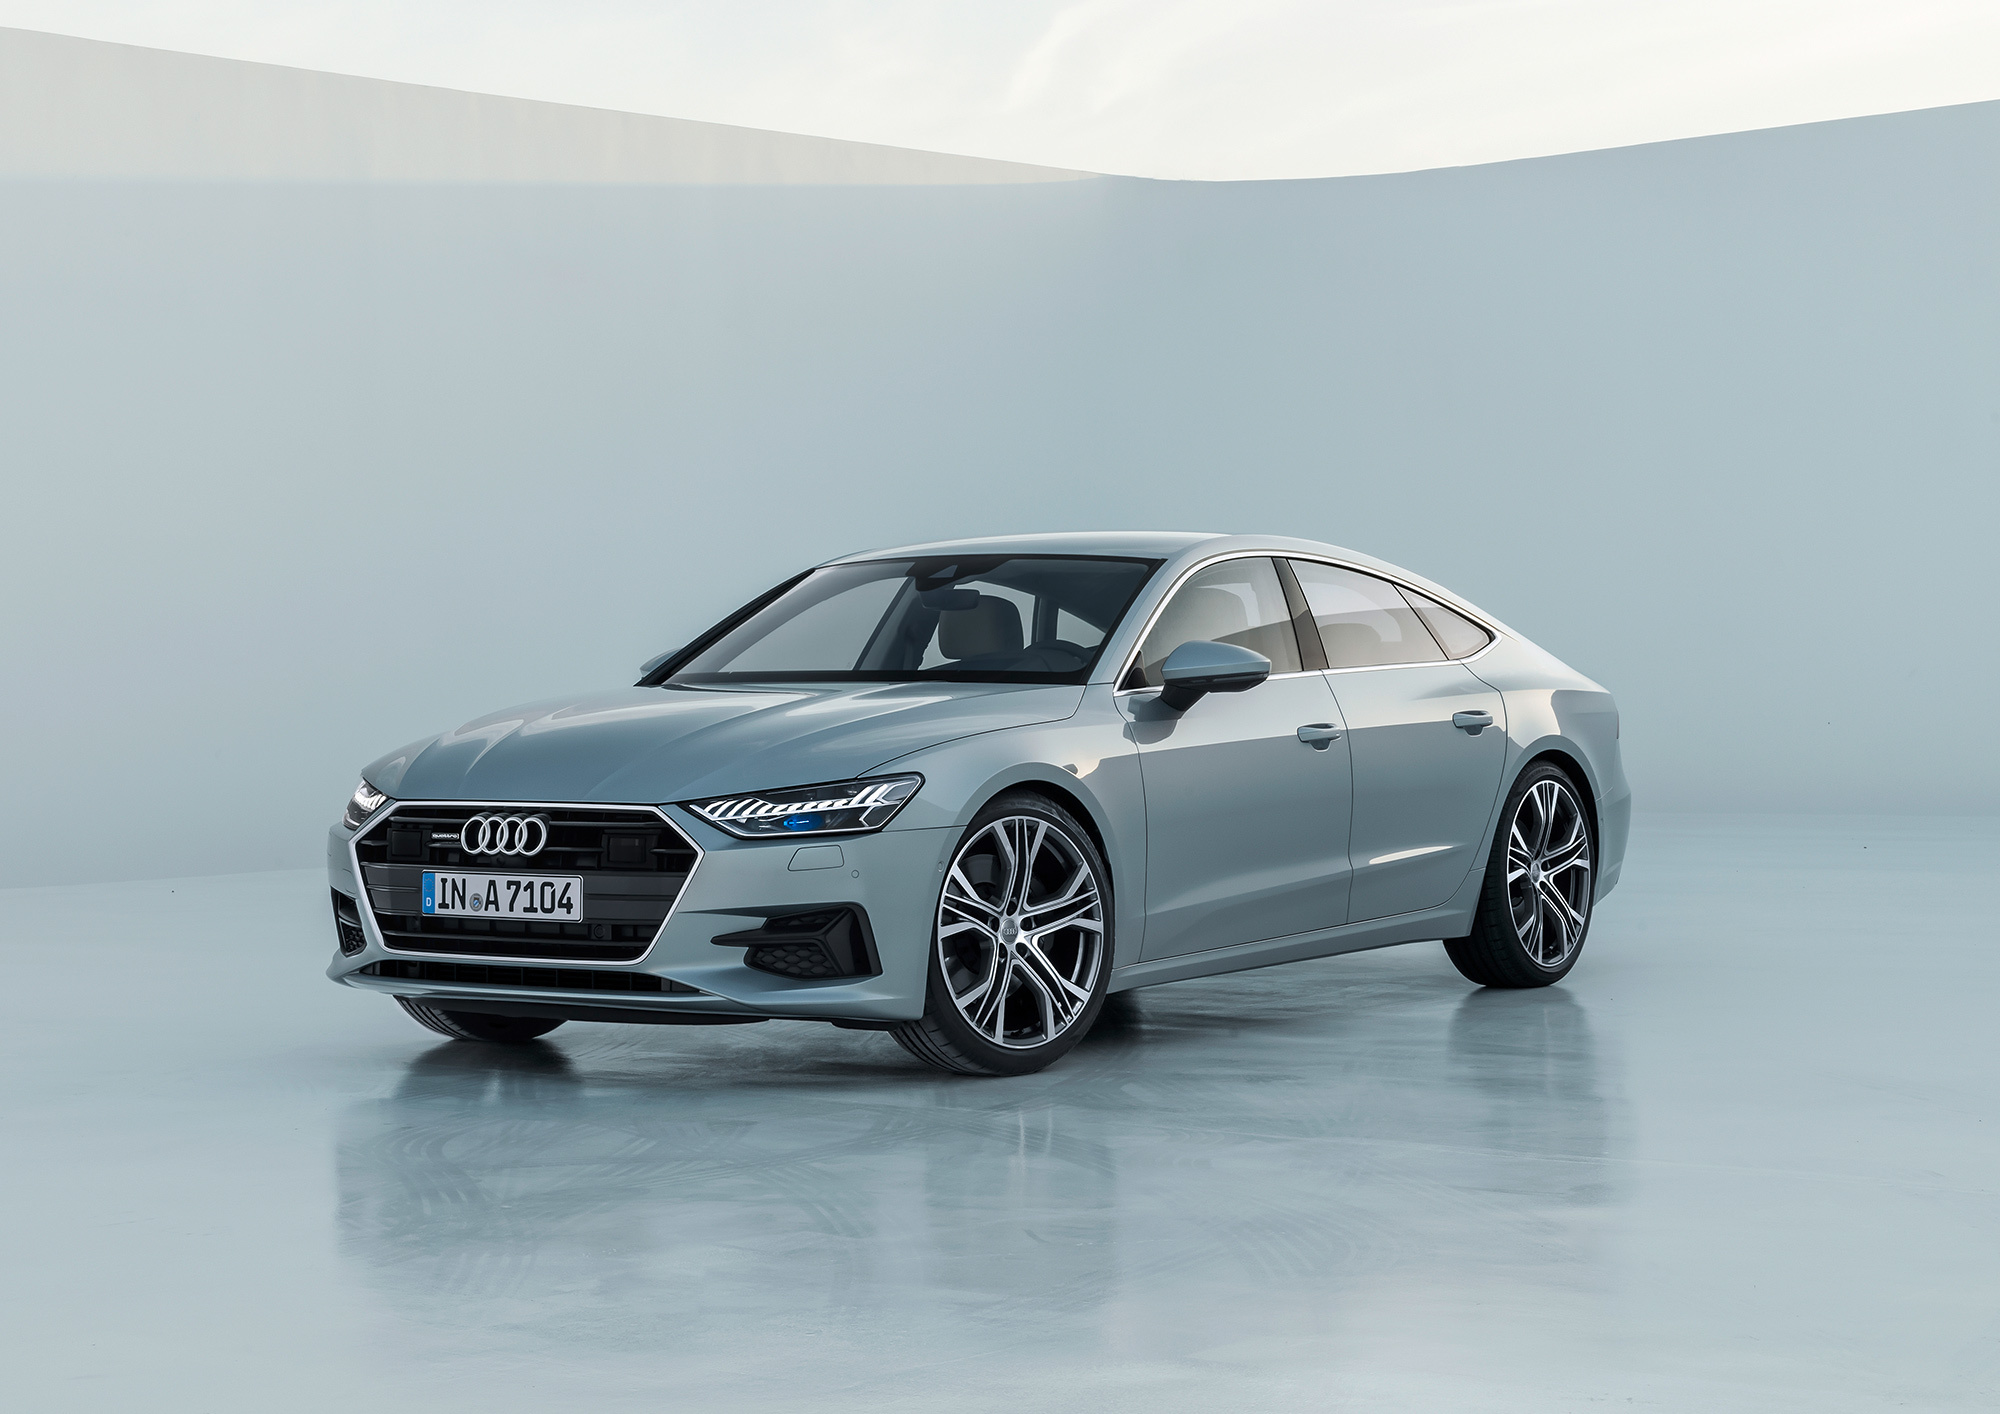 Audi A7 Sportback High Definition Wallpapers